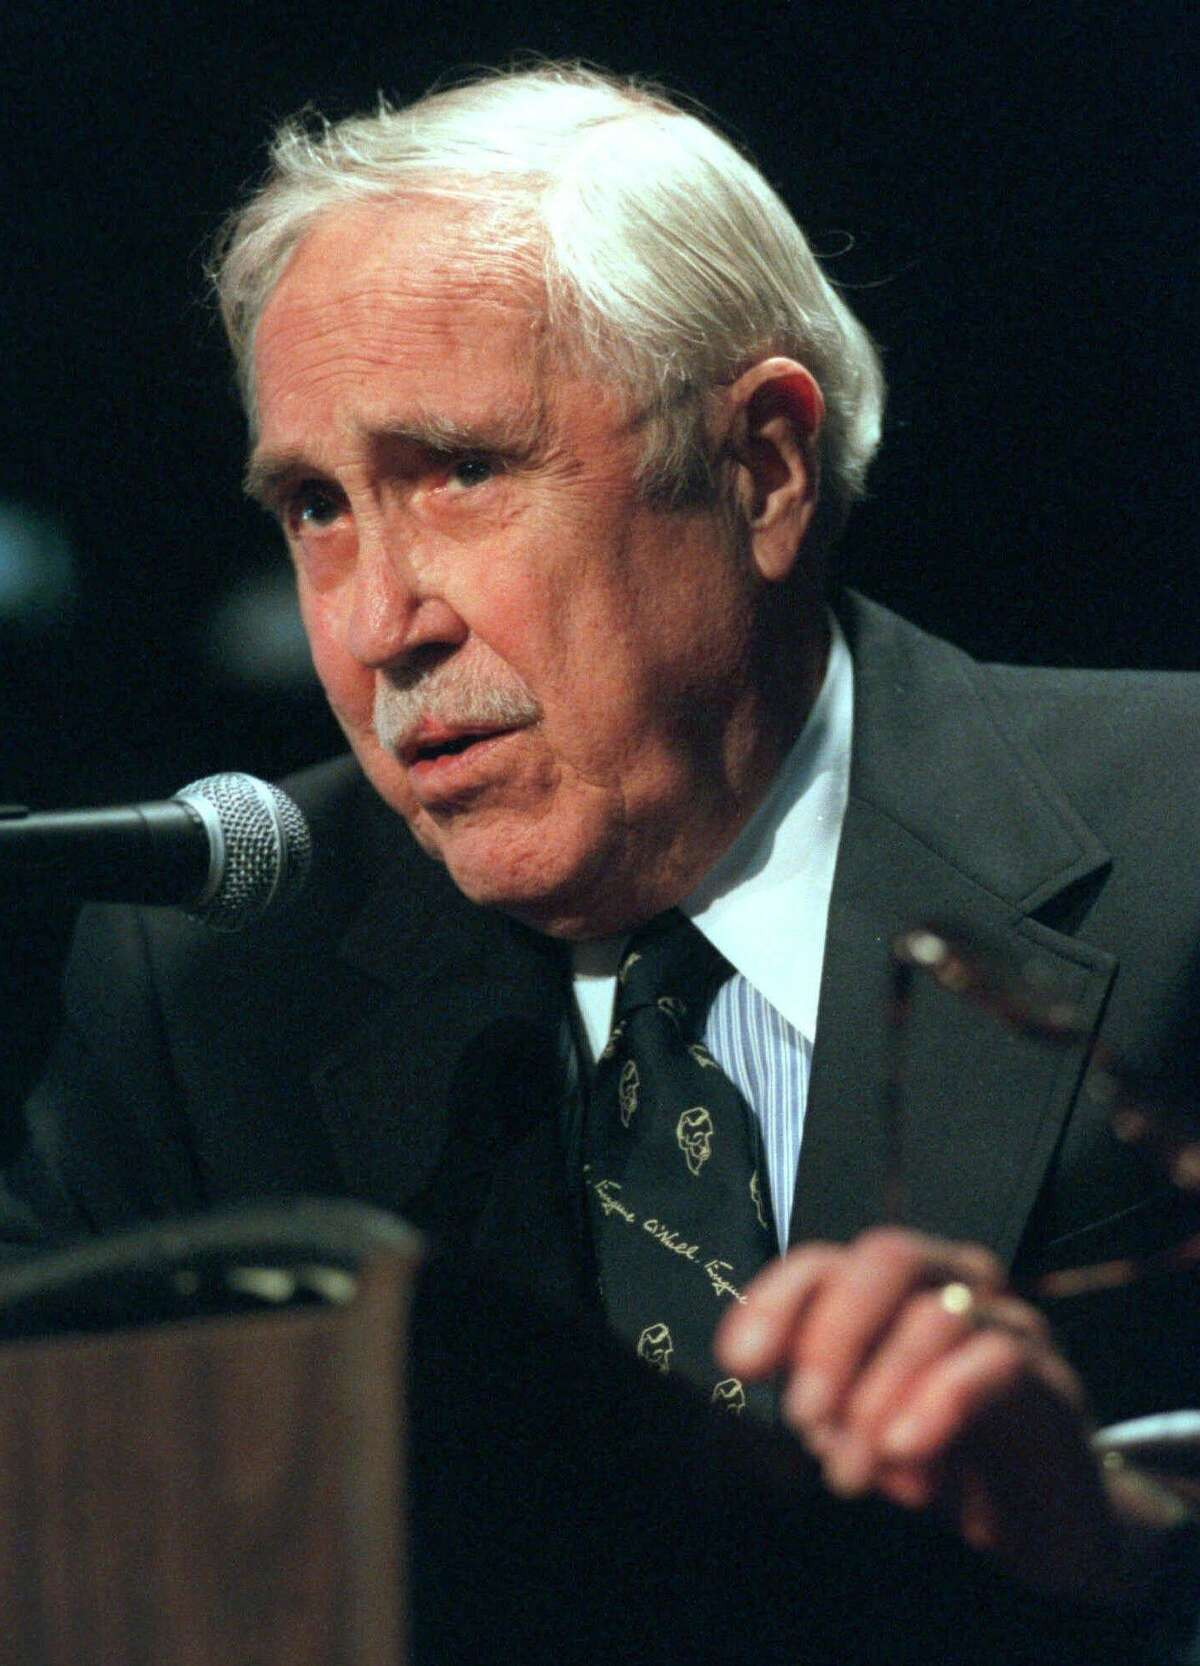 """The late actor Jason Robards speaks while receiving the Monte Cristo Award for """"distinguished artistic achievement in the spirit of Eugene O'Neill's pursuit of excellence"""" at the Eugene O'Neill Memorial Theater Center in Waterford, in October, 2000. He died two months later at the age of 78."""